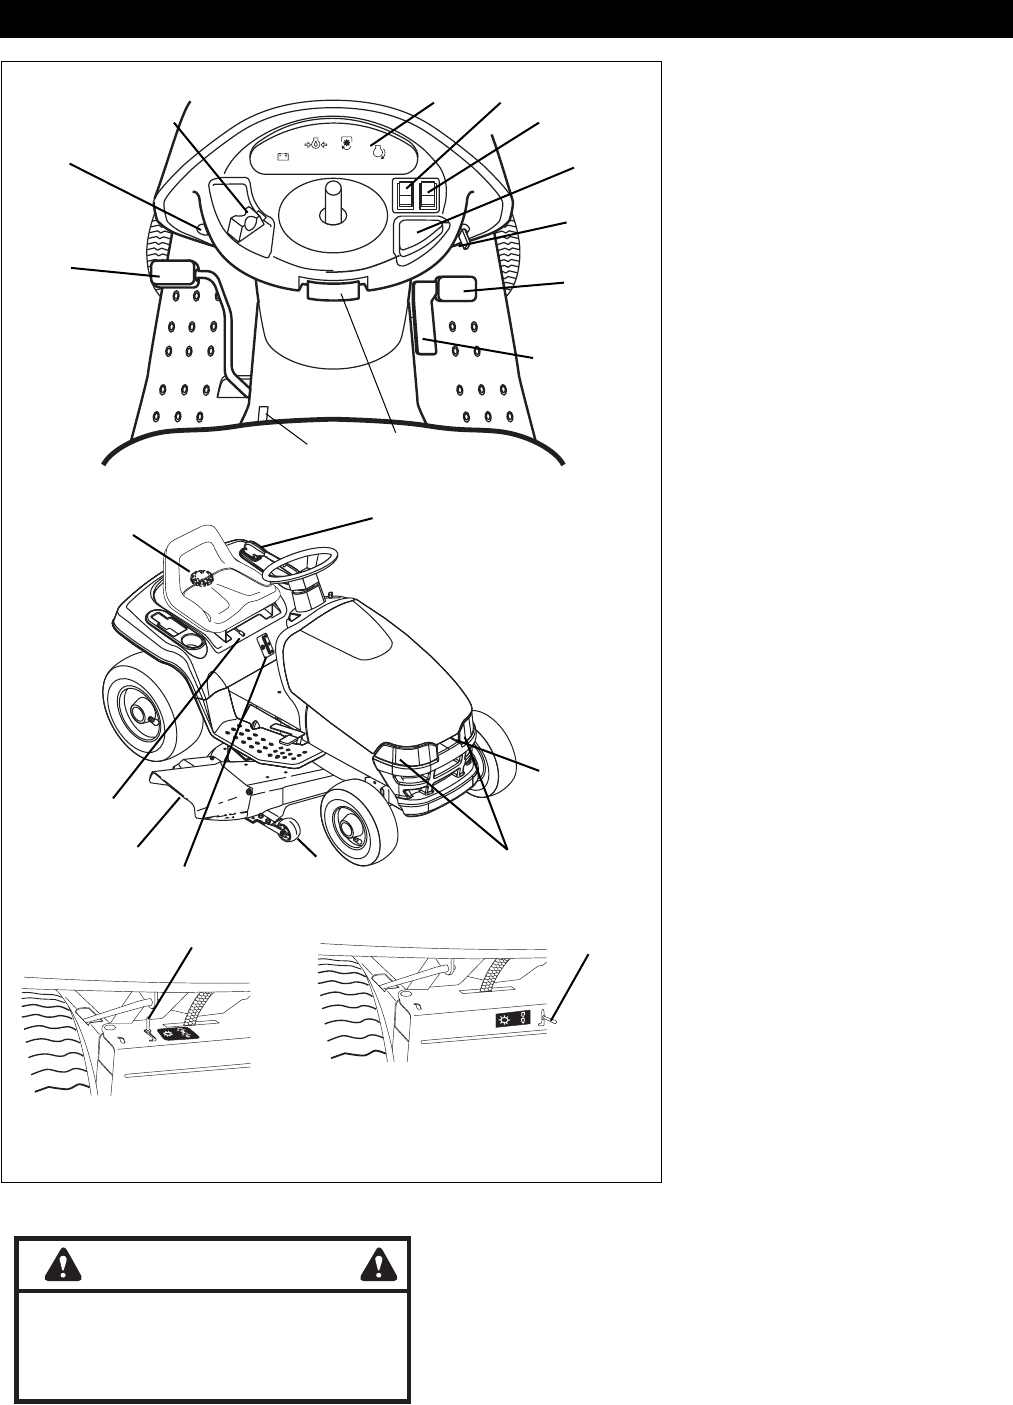 Page 2 of Ariens Lawn Mower 936036-2548 User Guide